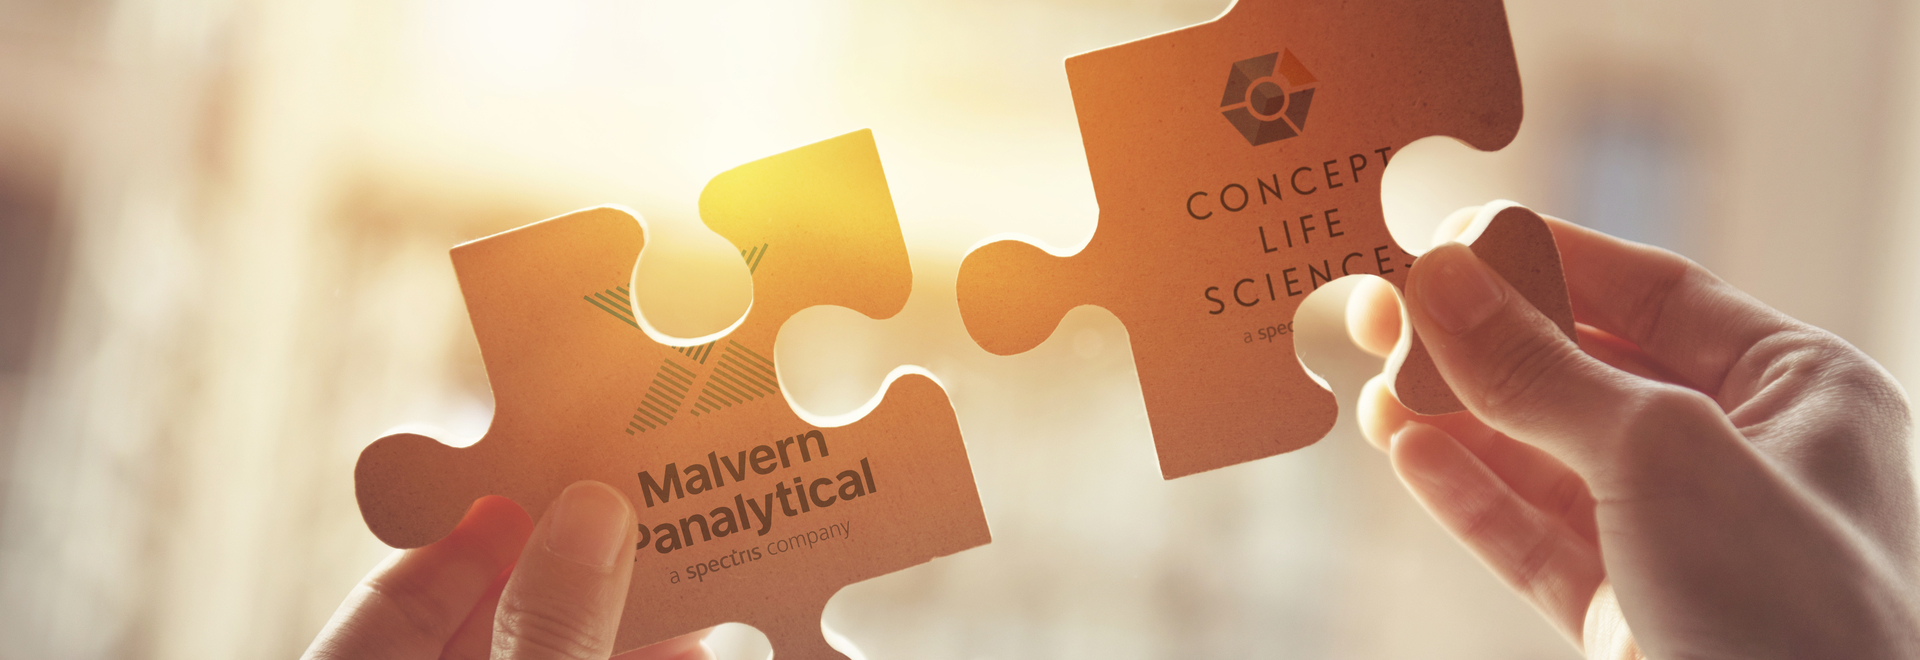 Malvern Panalytical and Concept Life Sciences announce integration